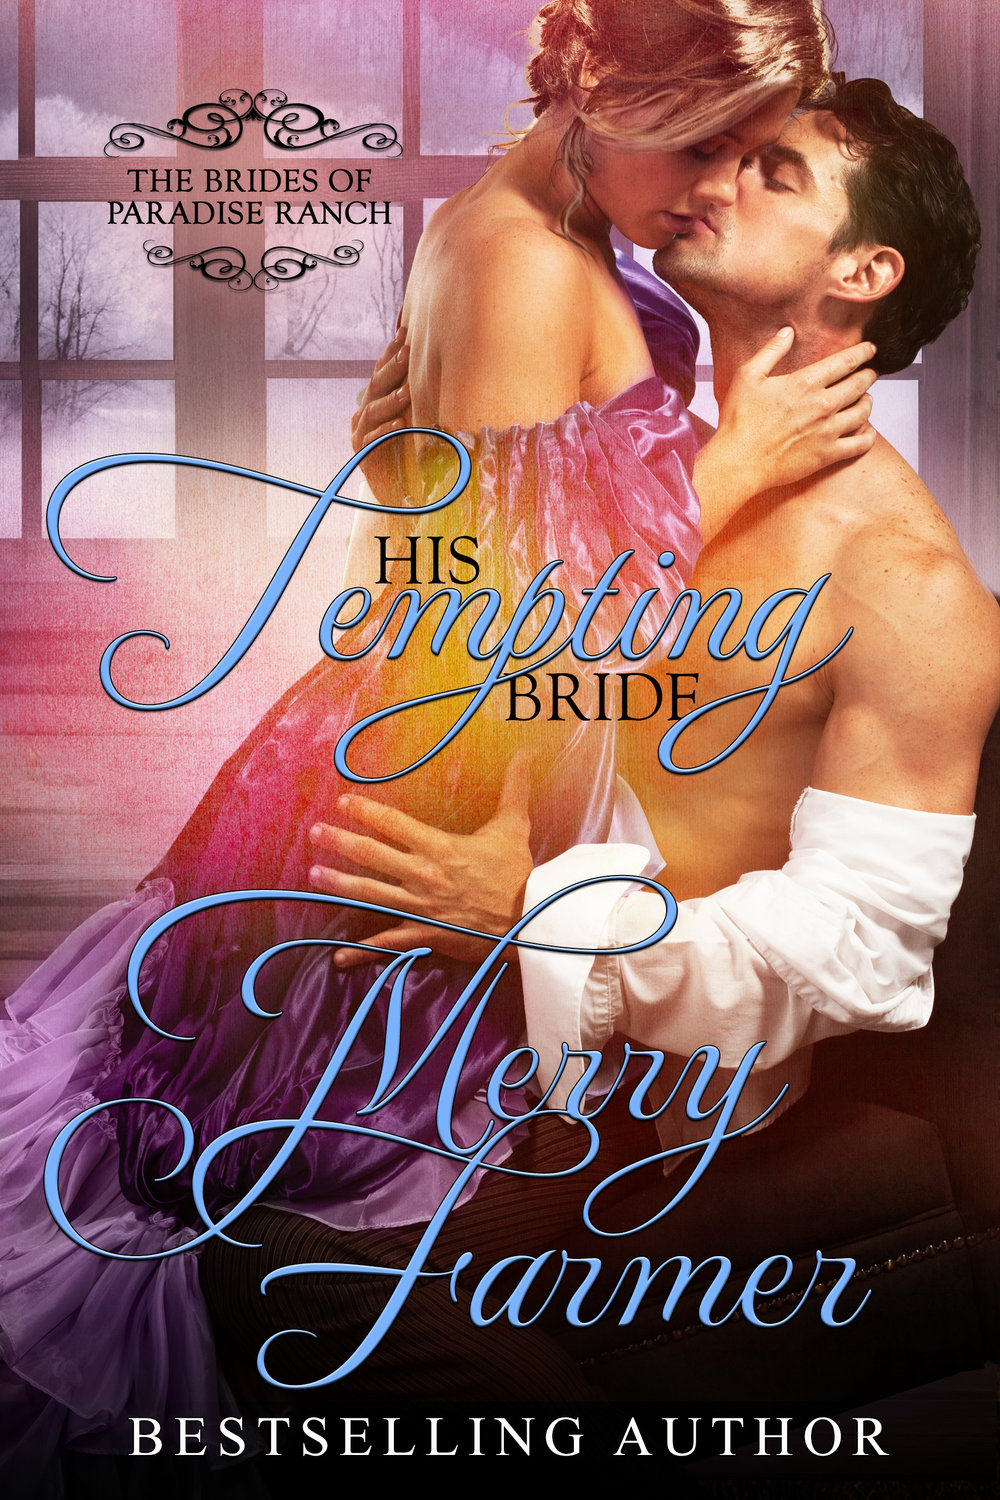 "His Tempting Bride (Book 5) - Miriam Long has been running for her whole life—running from her sinful past, running from her shameful mistakes, and running from the guilt of chickening out of her one chance to start over. But now, several hard months after refusing to get off the train and marry the man who sent for her as a mail-order bride, Miriam finds herself in Haskell, Wyoming once more. Only this time, more lives than just hers are at stake.Cody Montrose is instantly smitten with the fun and flirty woman he meets by chance at Haskell's train station…until he learns that the object of his temptation is the very bride who stood him up. Anger battles with desire as the two of them struggle with the disaster that should have been their union months ago.But there's more to worry about than their complex romance. Miriam has come to town with a traveling troupe of gypsy performers, and if they can't sing for their supper, they will all starve. In true Haskell style, the town rallies behind them, but is it enough to save the day and to rekindle the romance that both Miriam and Cody missed out on before?PLEASE BE ADVISED: Steam Level = HOTIf you would like to read this story without any ""scenes,"" check out Miriam: The Tempting Bride."